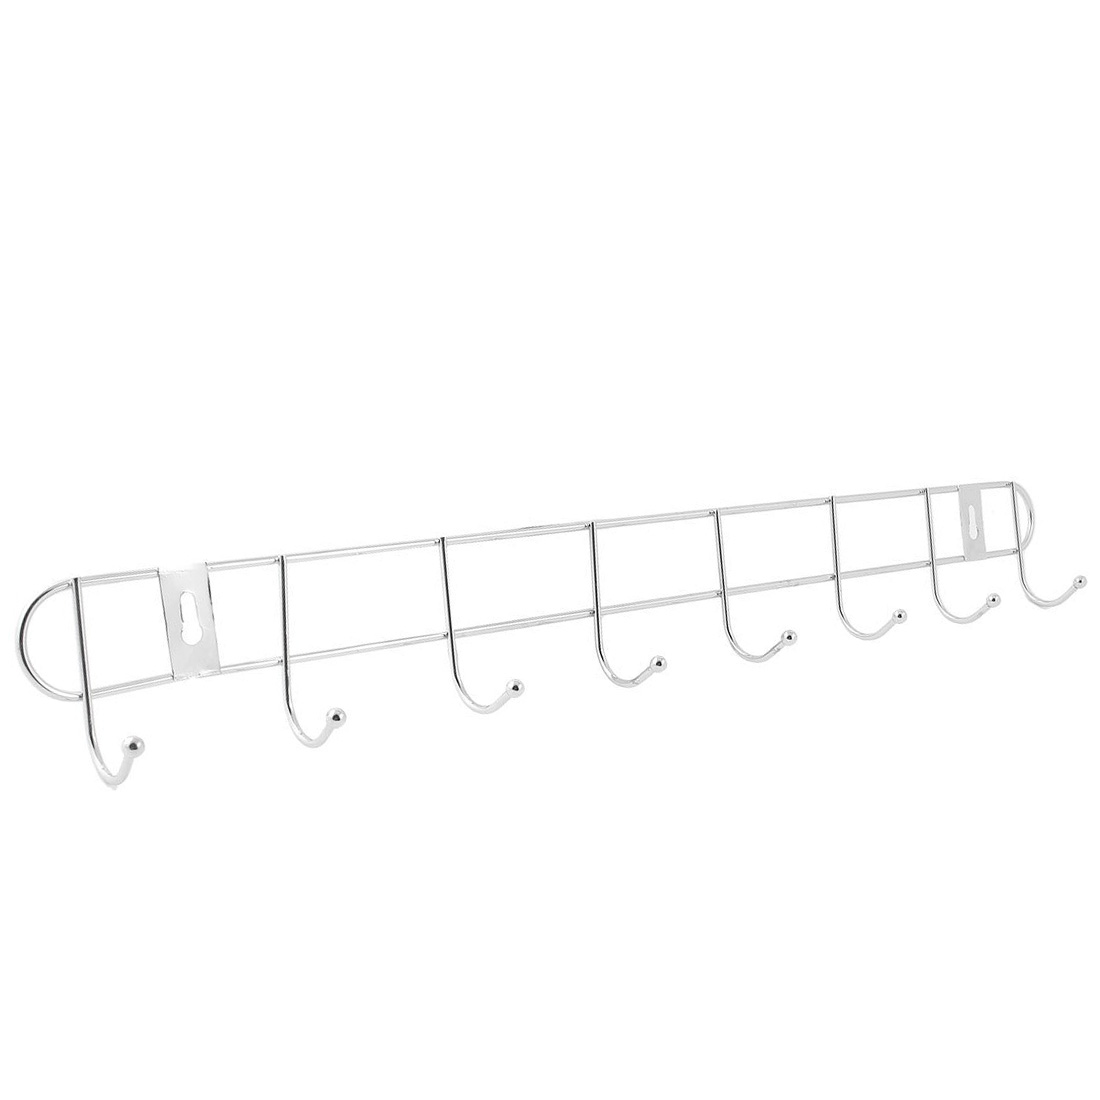 Stainless Steel Wall Hook Rack Hanger for Clothes Towel 2pcs